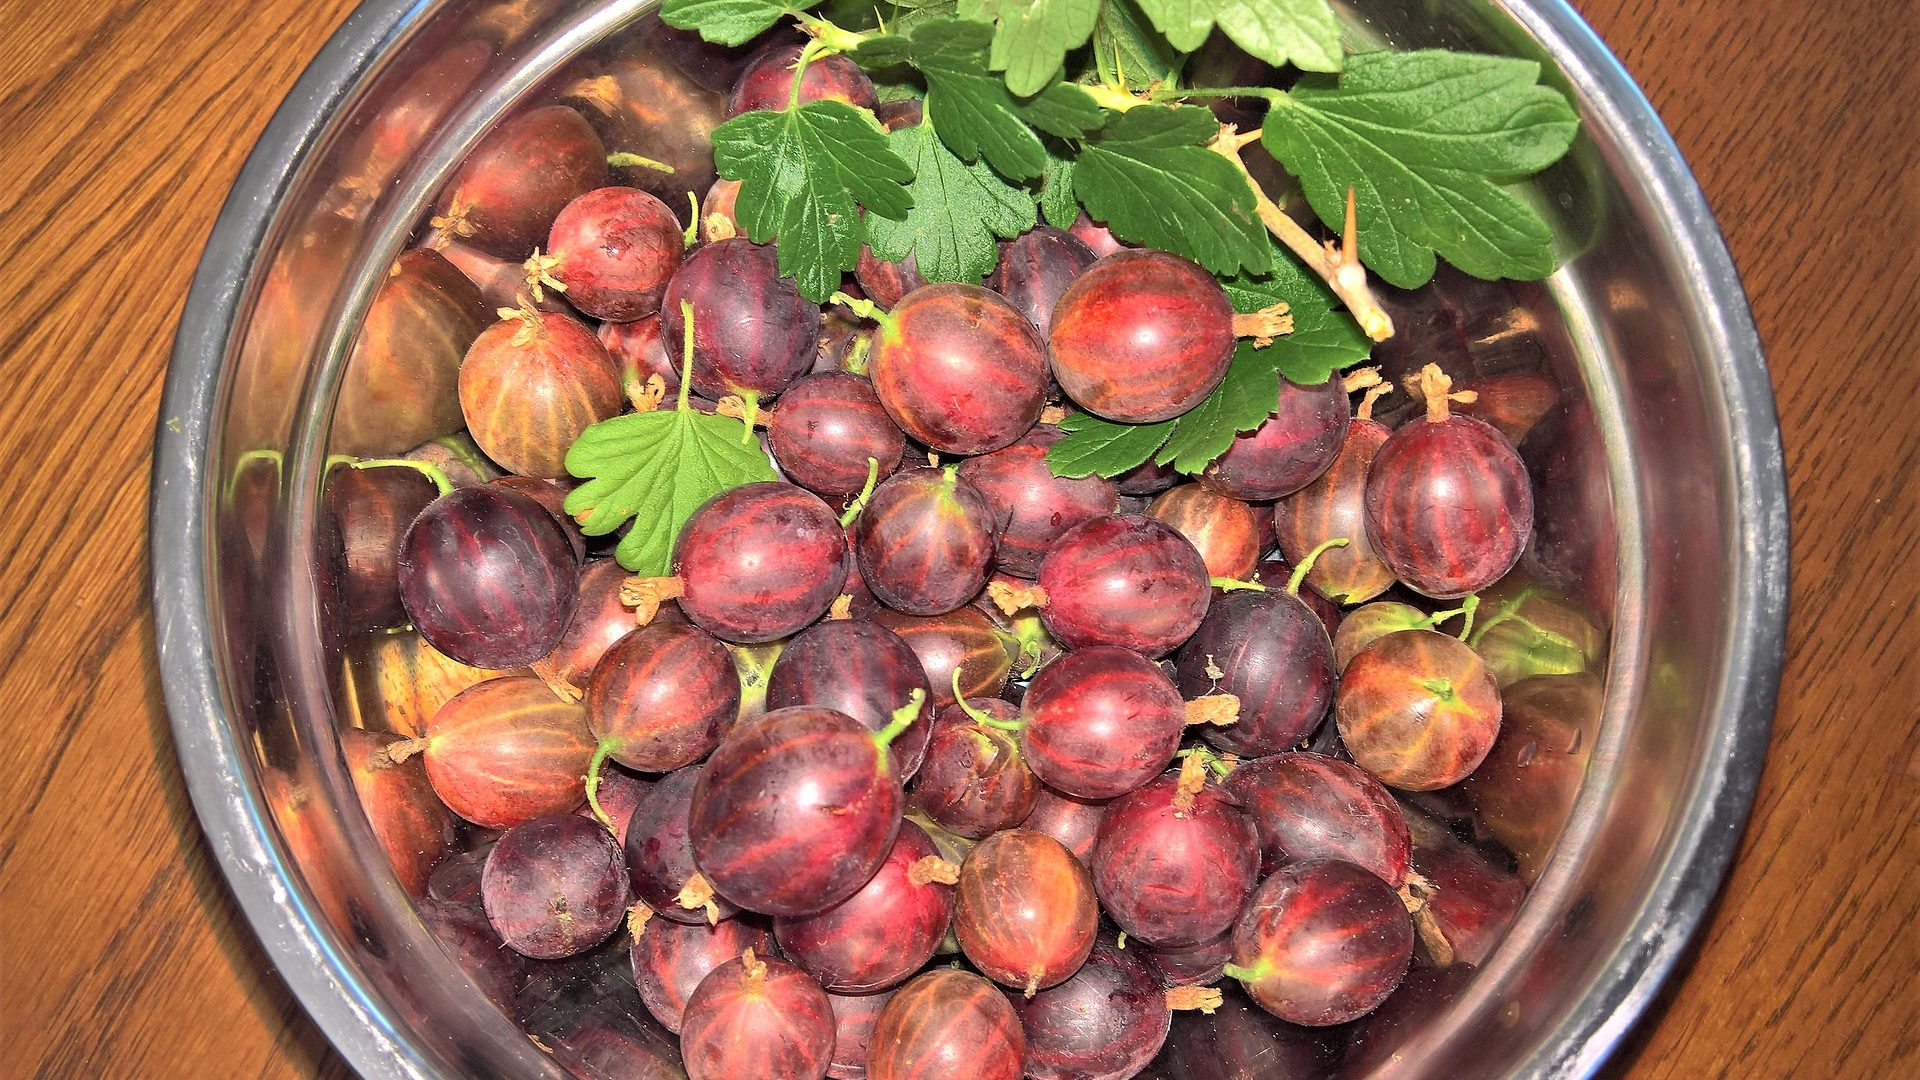 gooseberries-3535189_1920